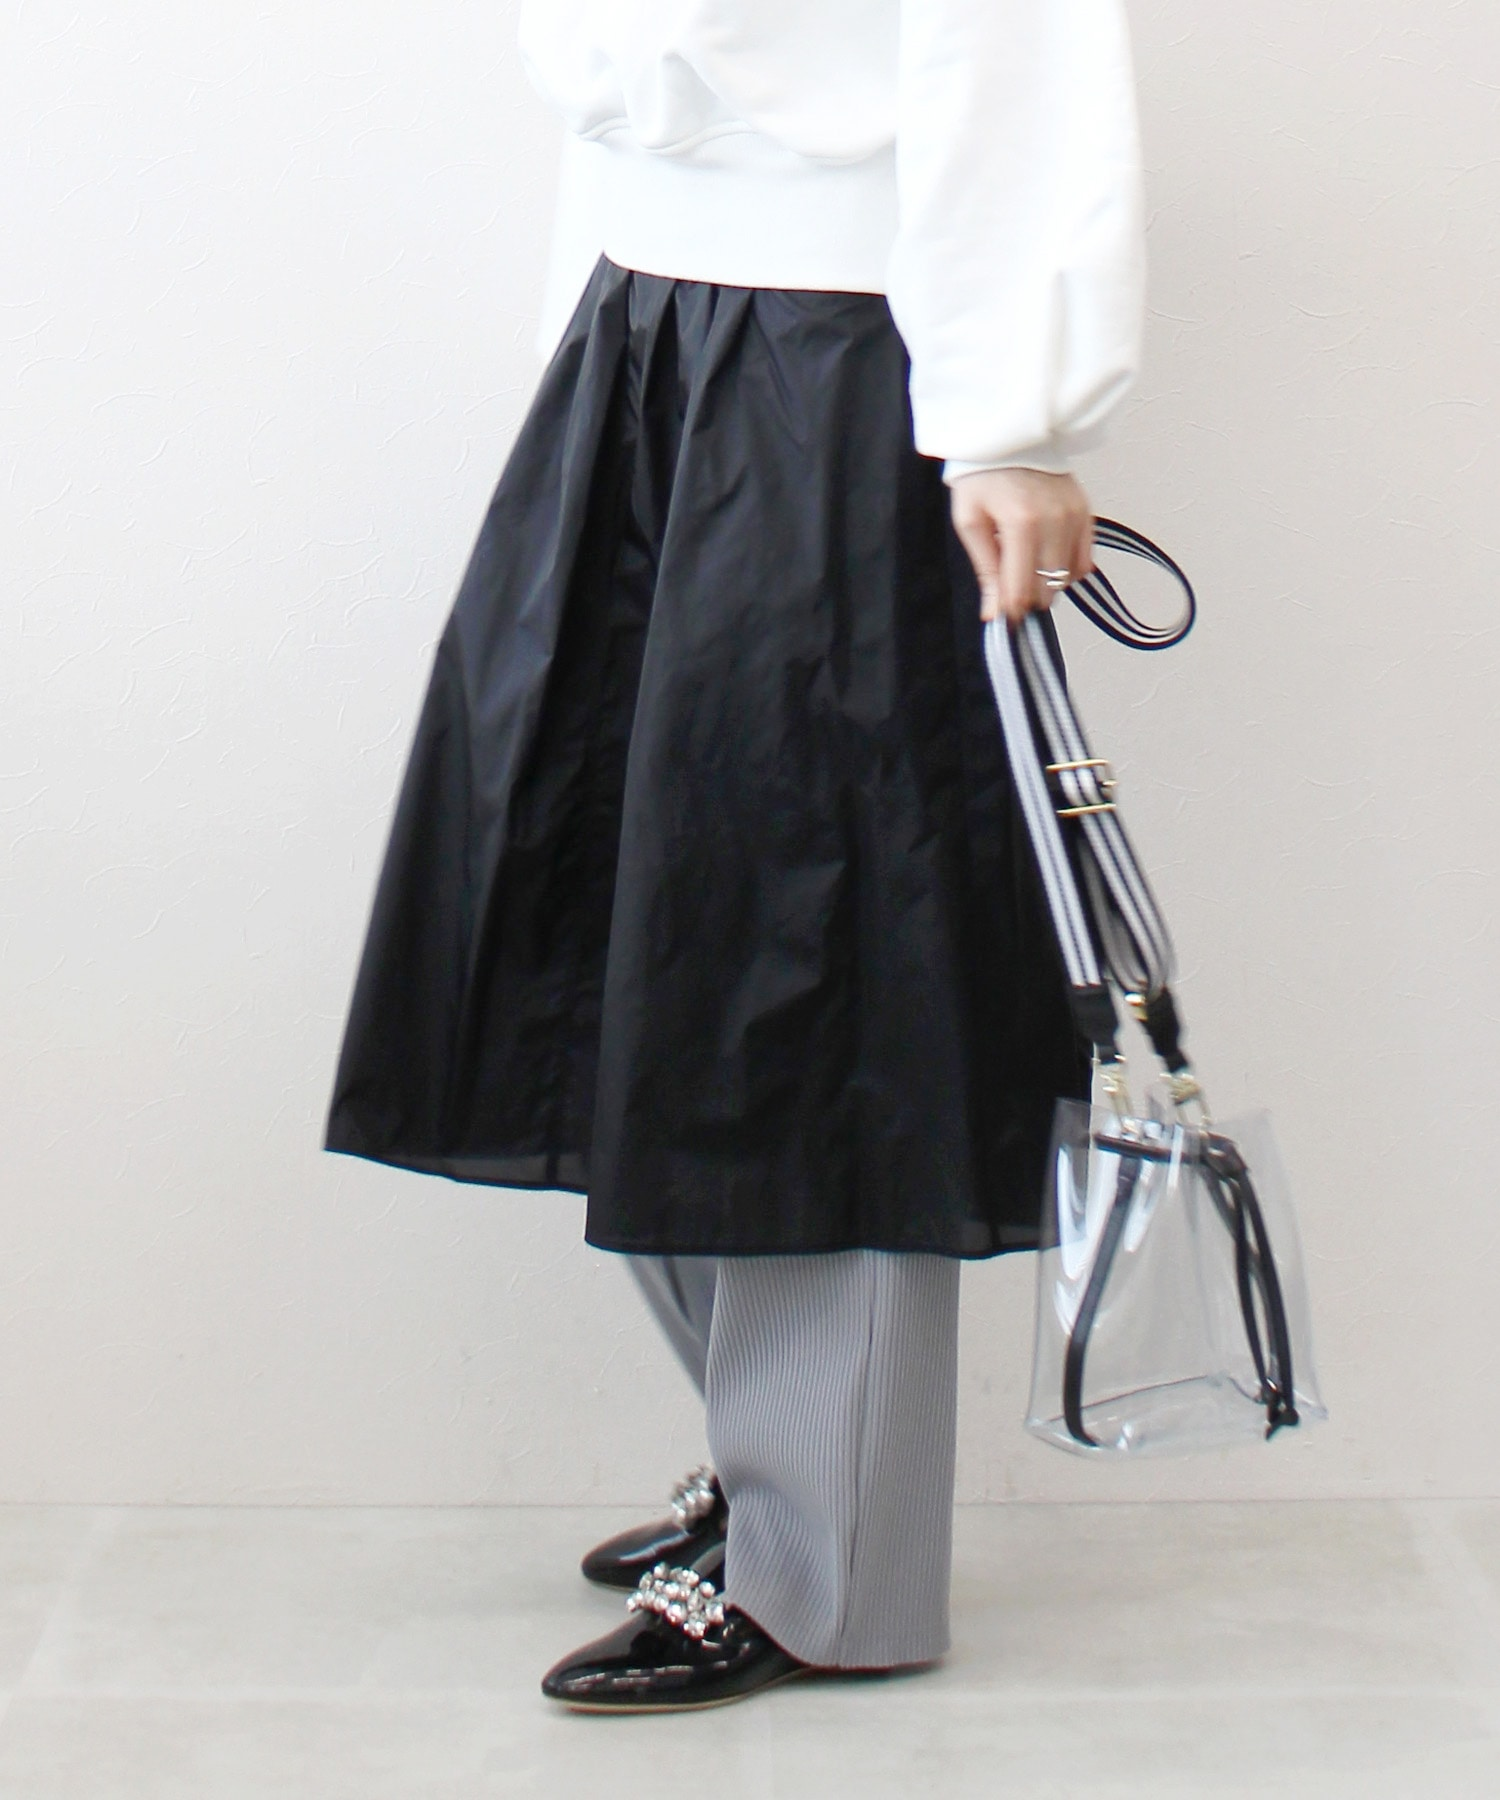 sheer nylon layered skirt